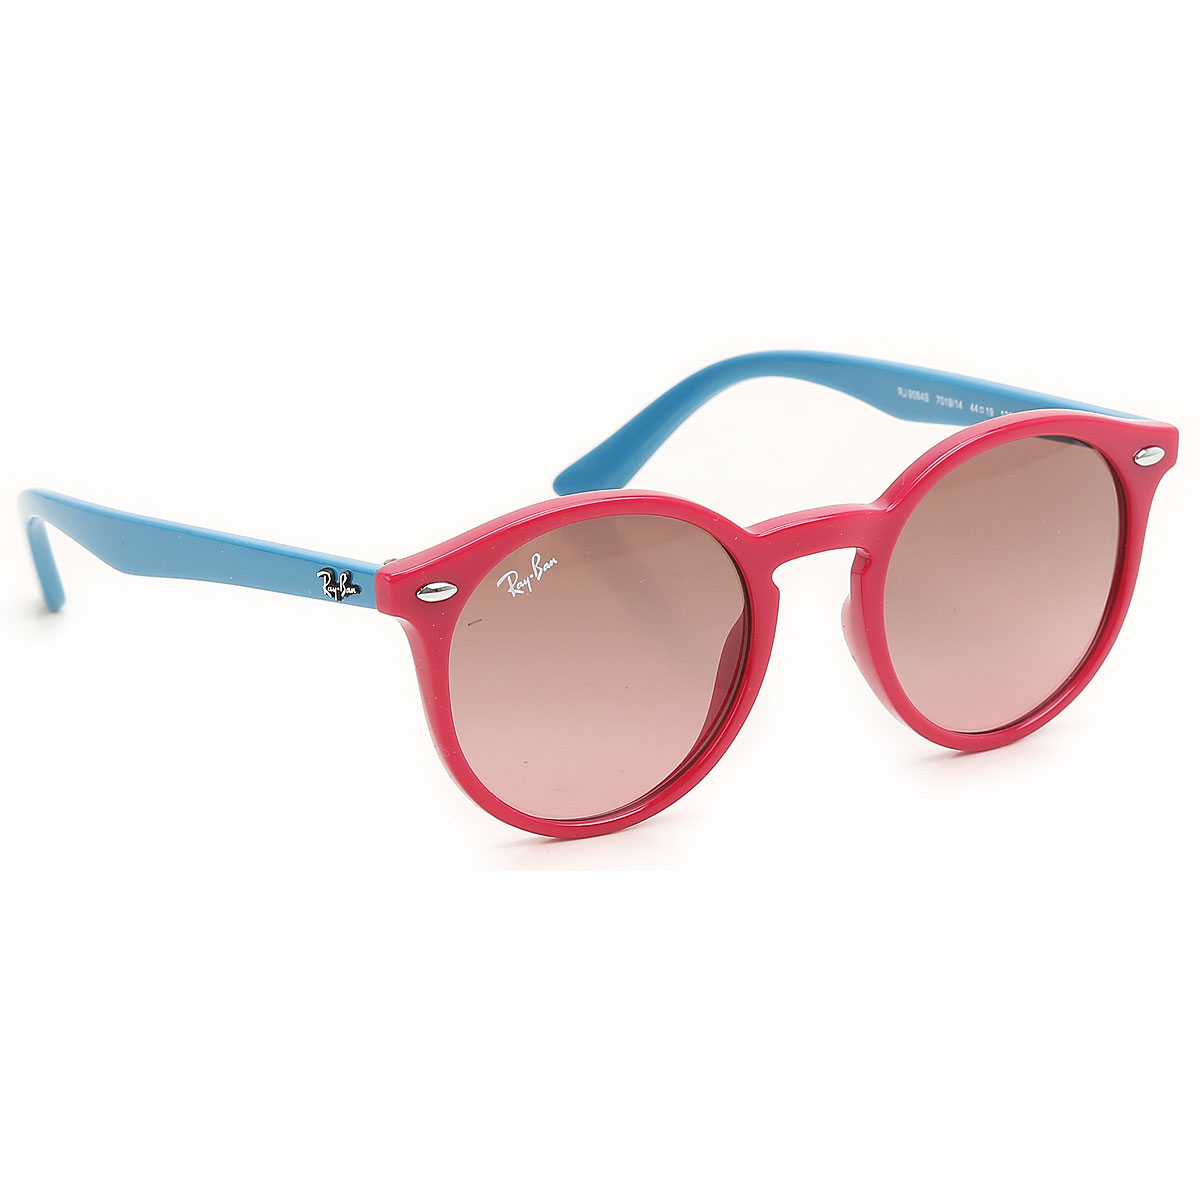 Ray Ban Junior Kids Sunglasses for Girls On Sale, Fuchsia, 2017 USA-407333